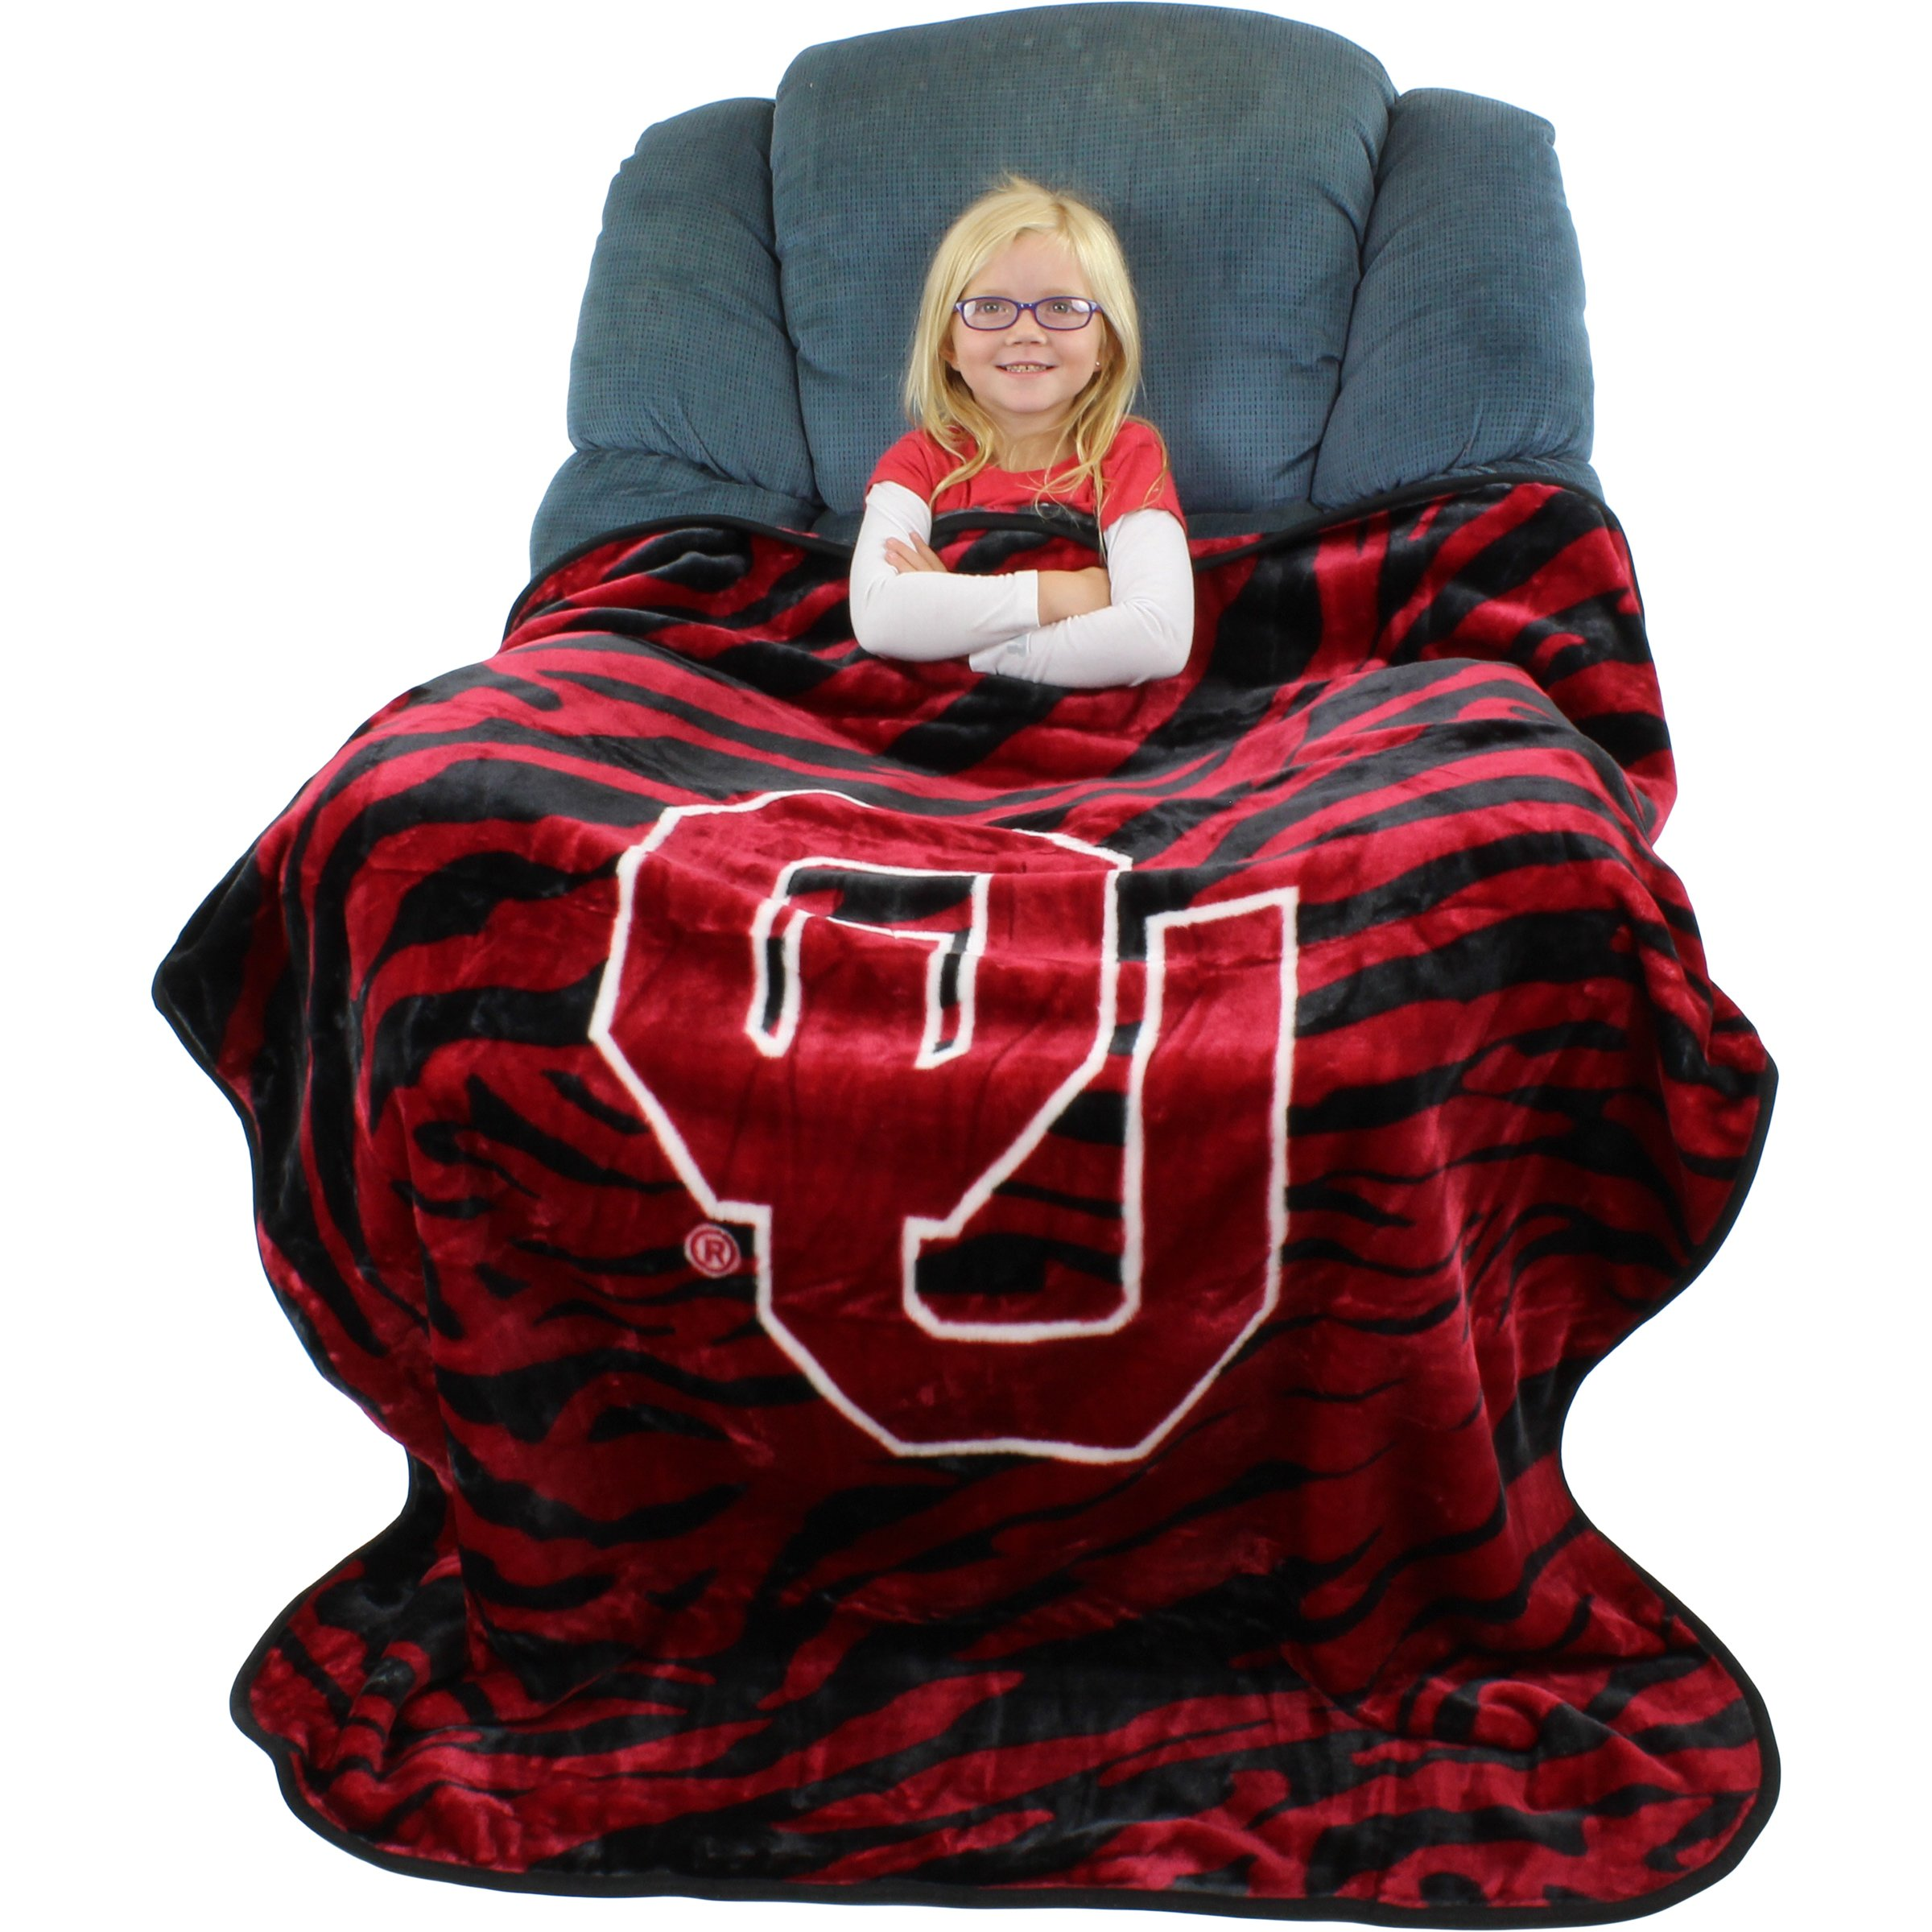 College Covers Raschel Throw Blanket, 50'' x 60'', Oklahoma Sooners by College Covers